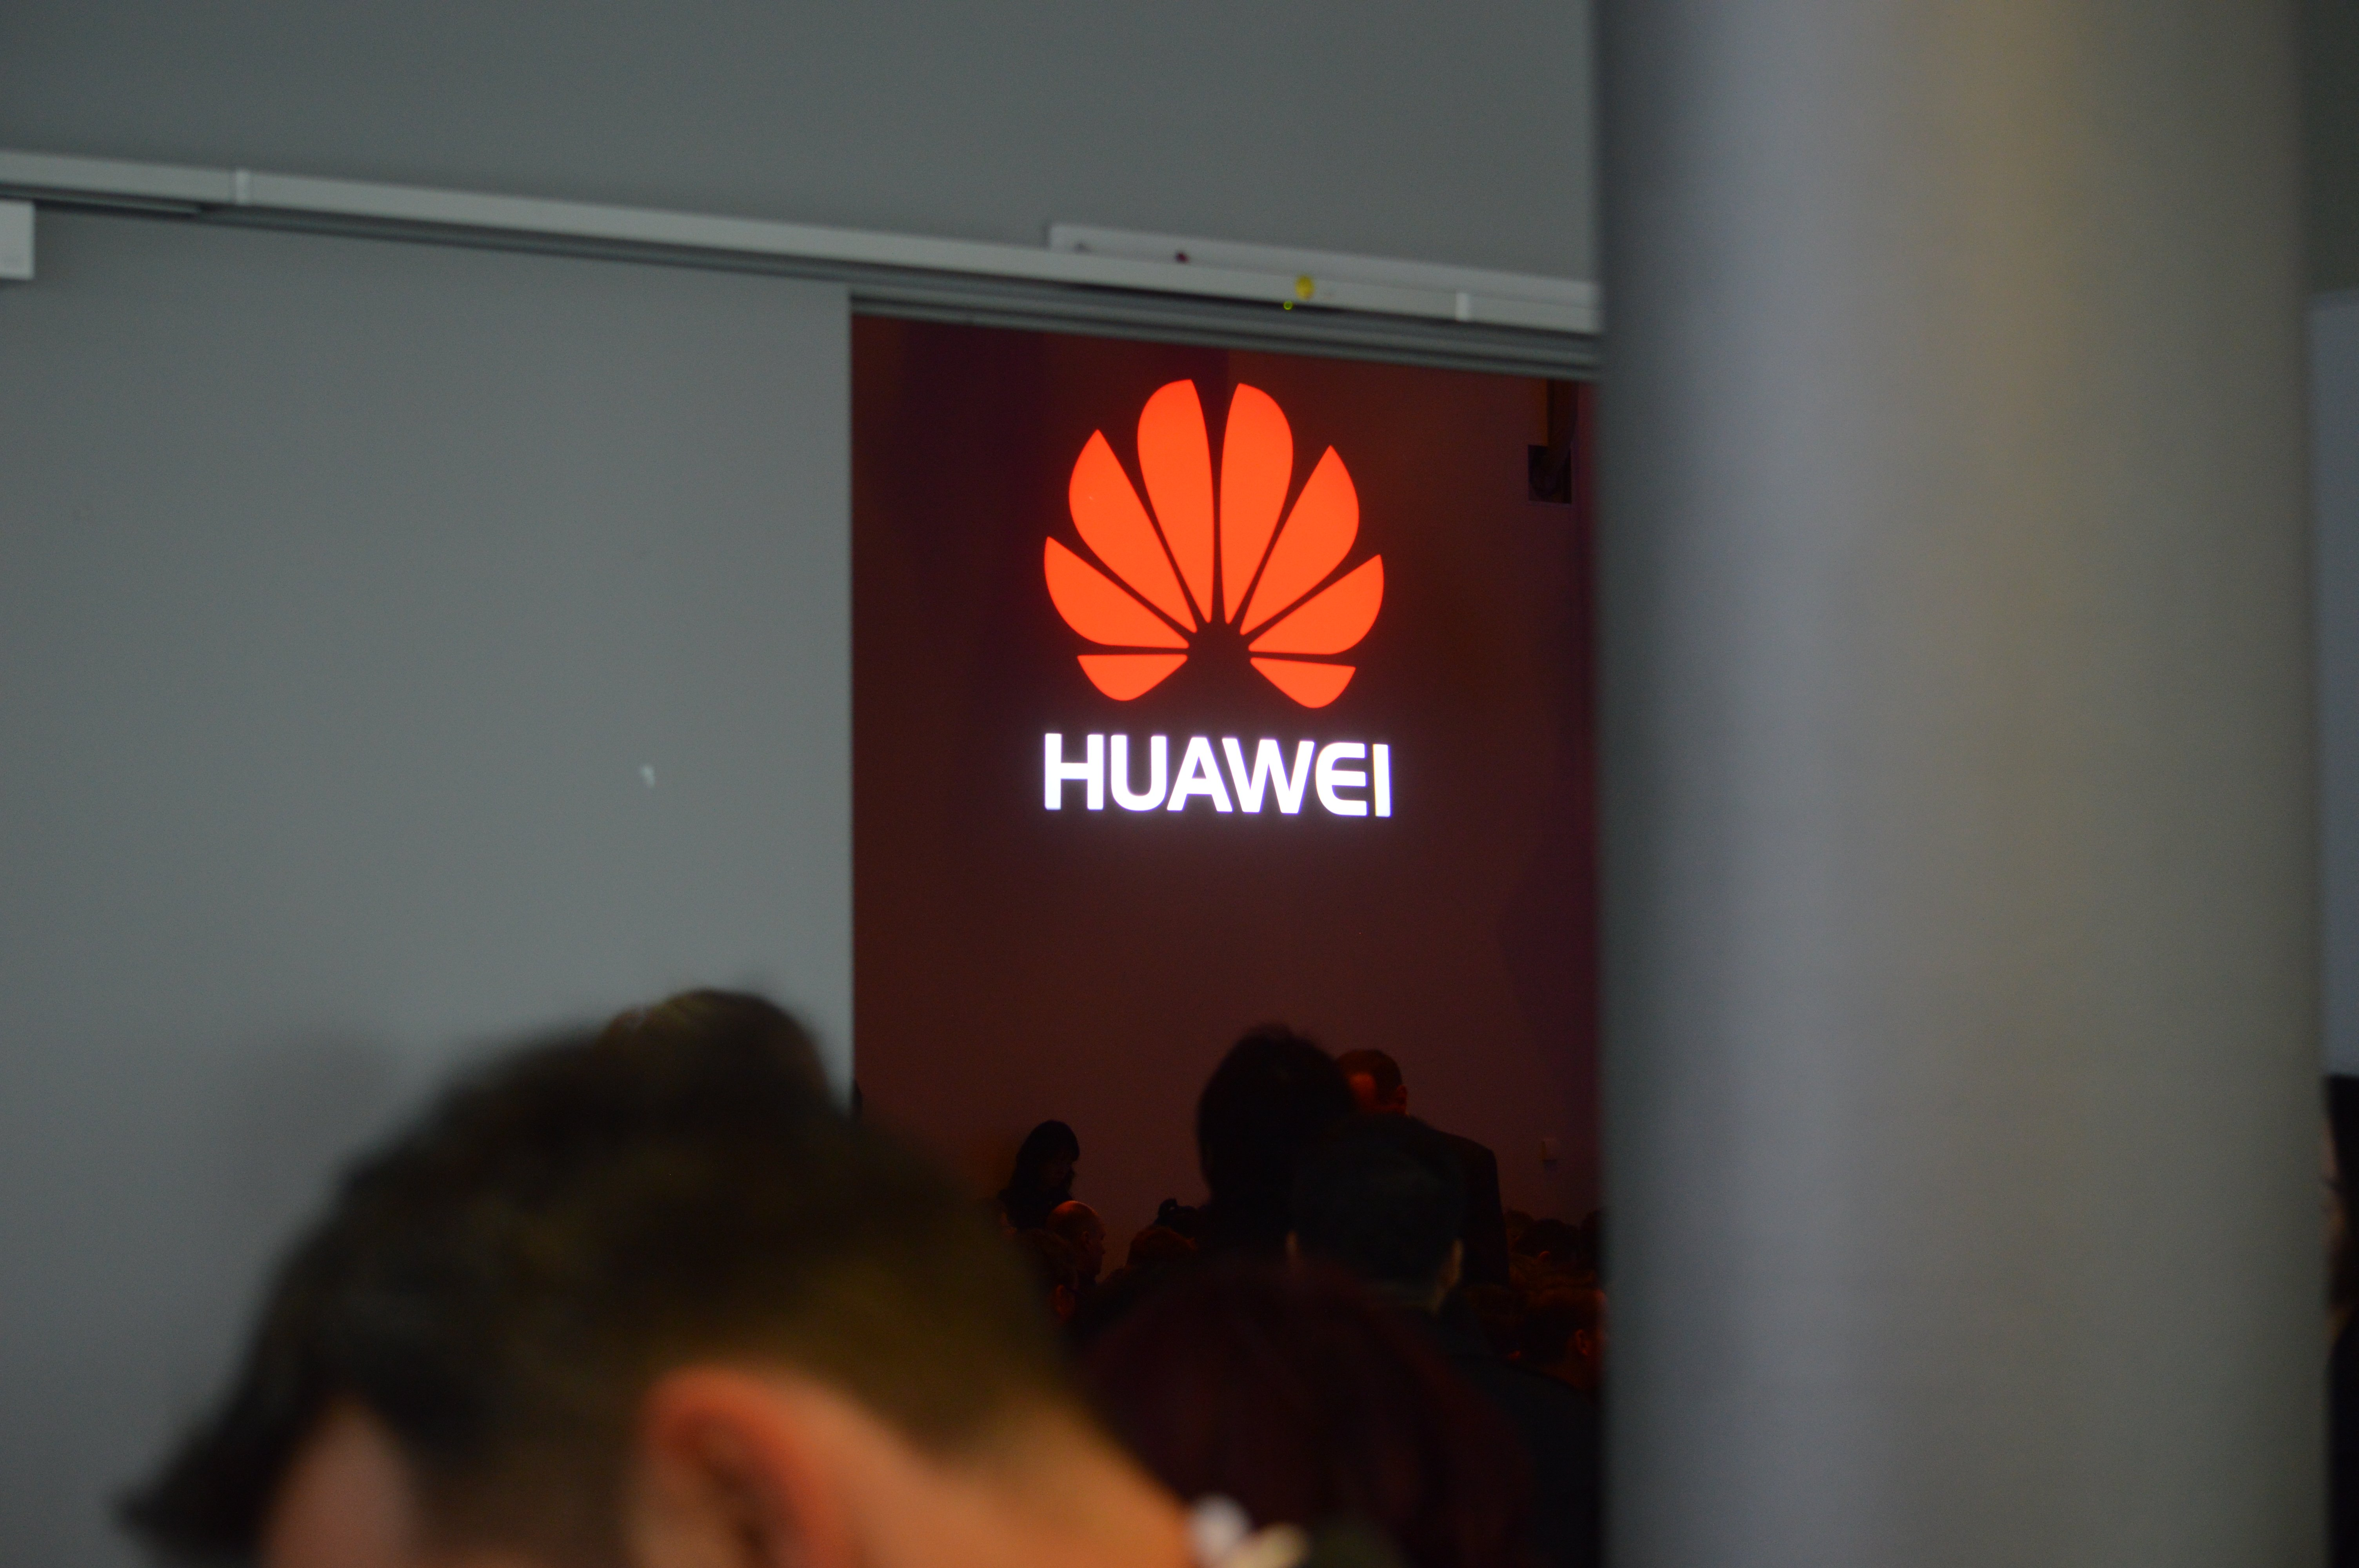 US government asks allies not to use Huawei equipment - DCD